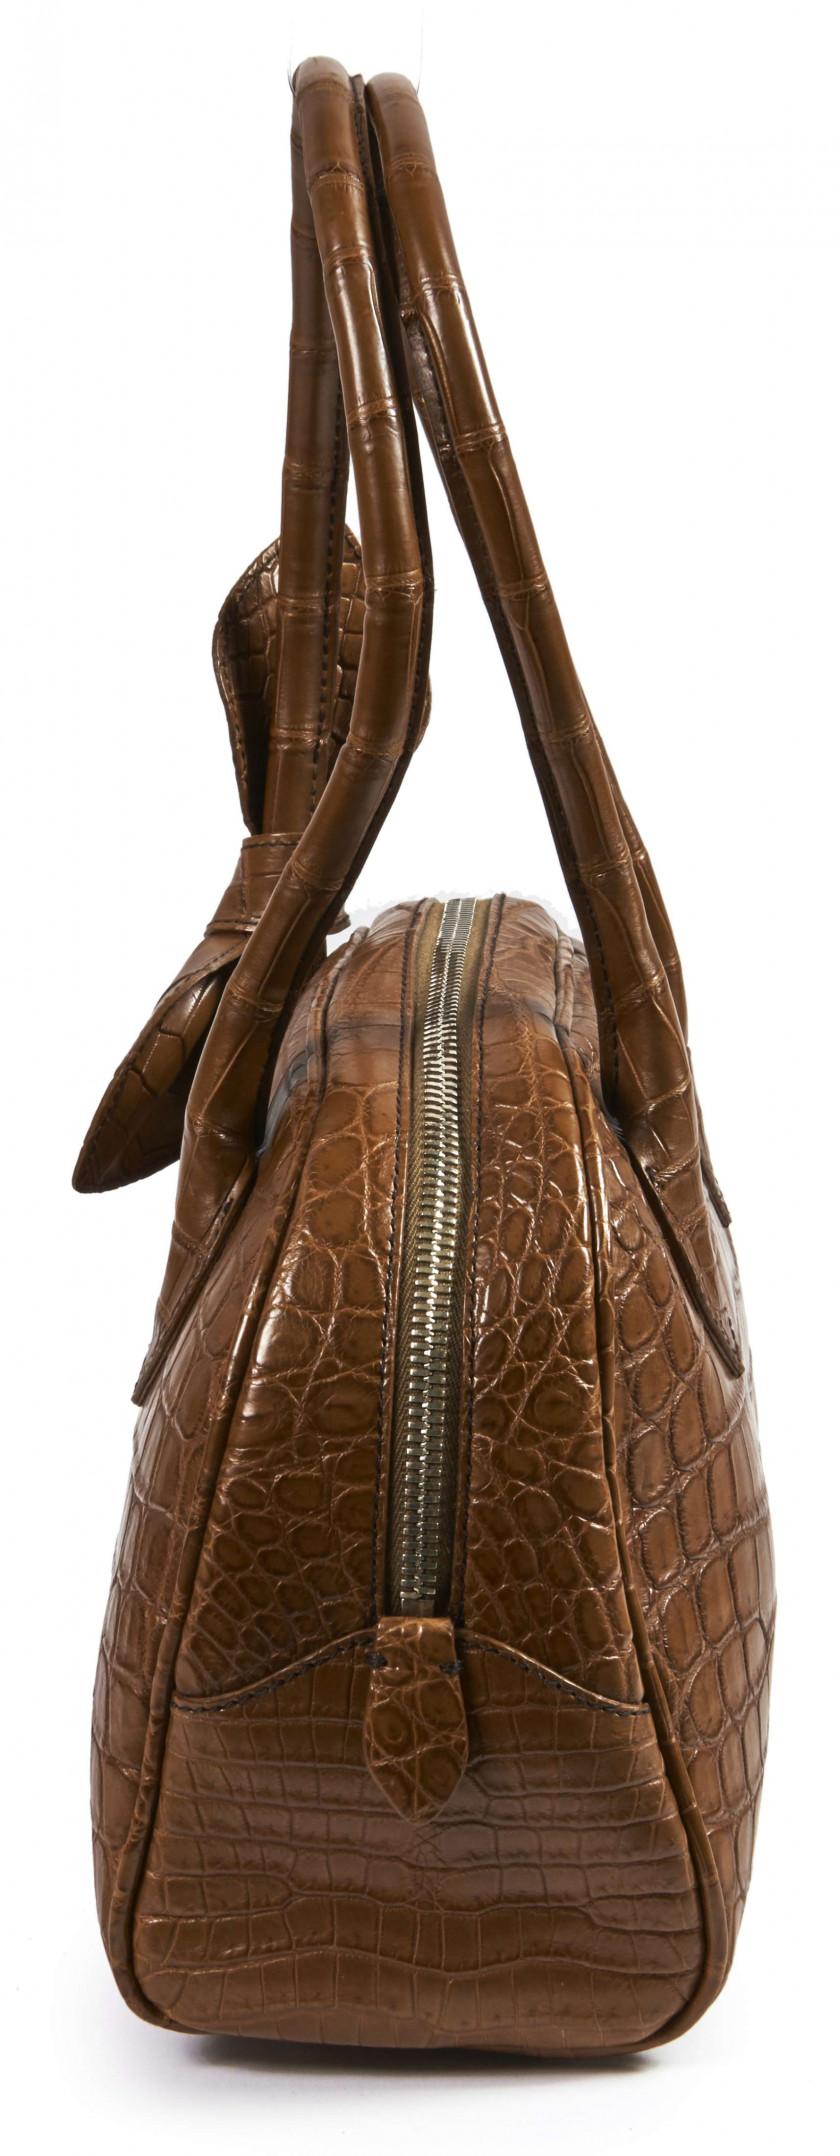 ALAÏA  Sac BAULETTO Crocodile tabac (Crocodylus) II/B Garniture métal chromé (26 x 18 x 11 cm)  BAULETTO bag Tobacco...